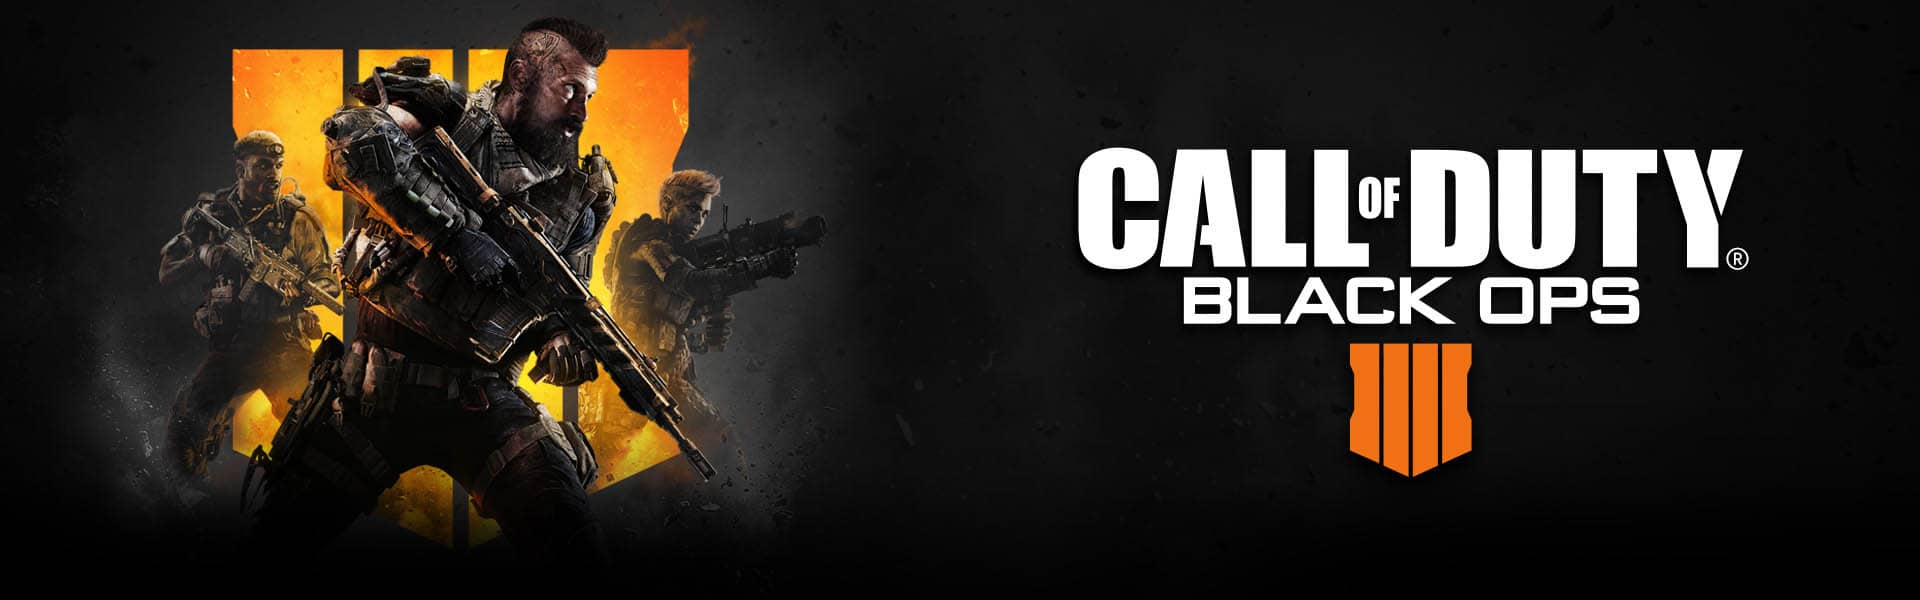 Call of Duty Black Ops 4 Weapons List – The Ultimate Tier List